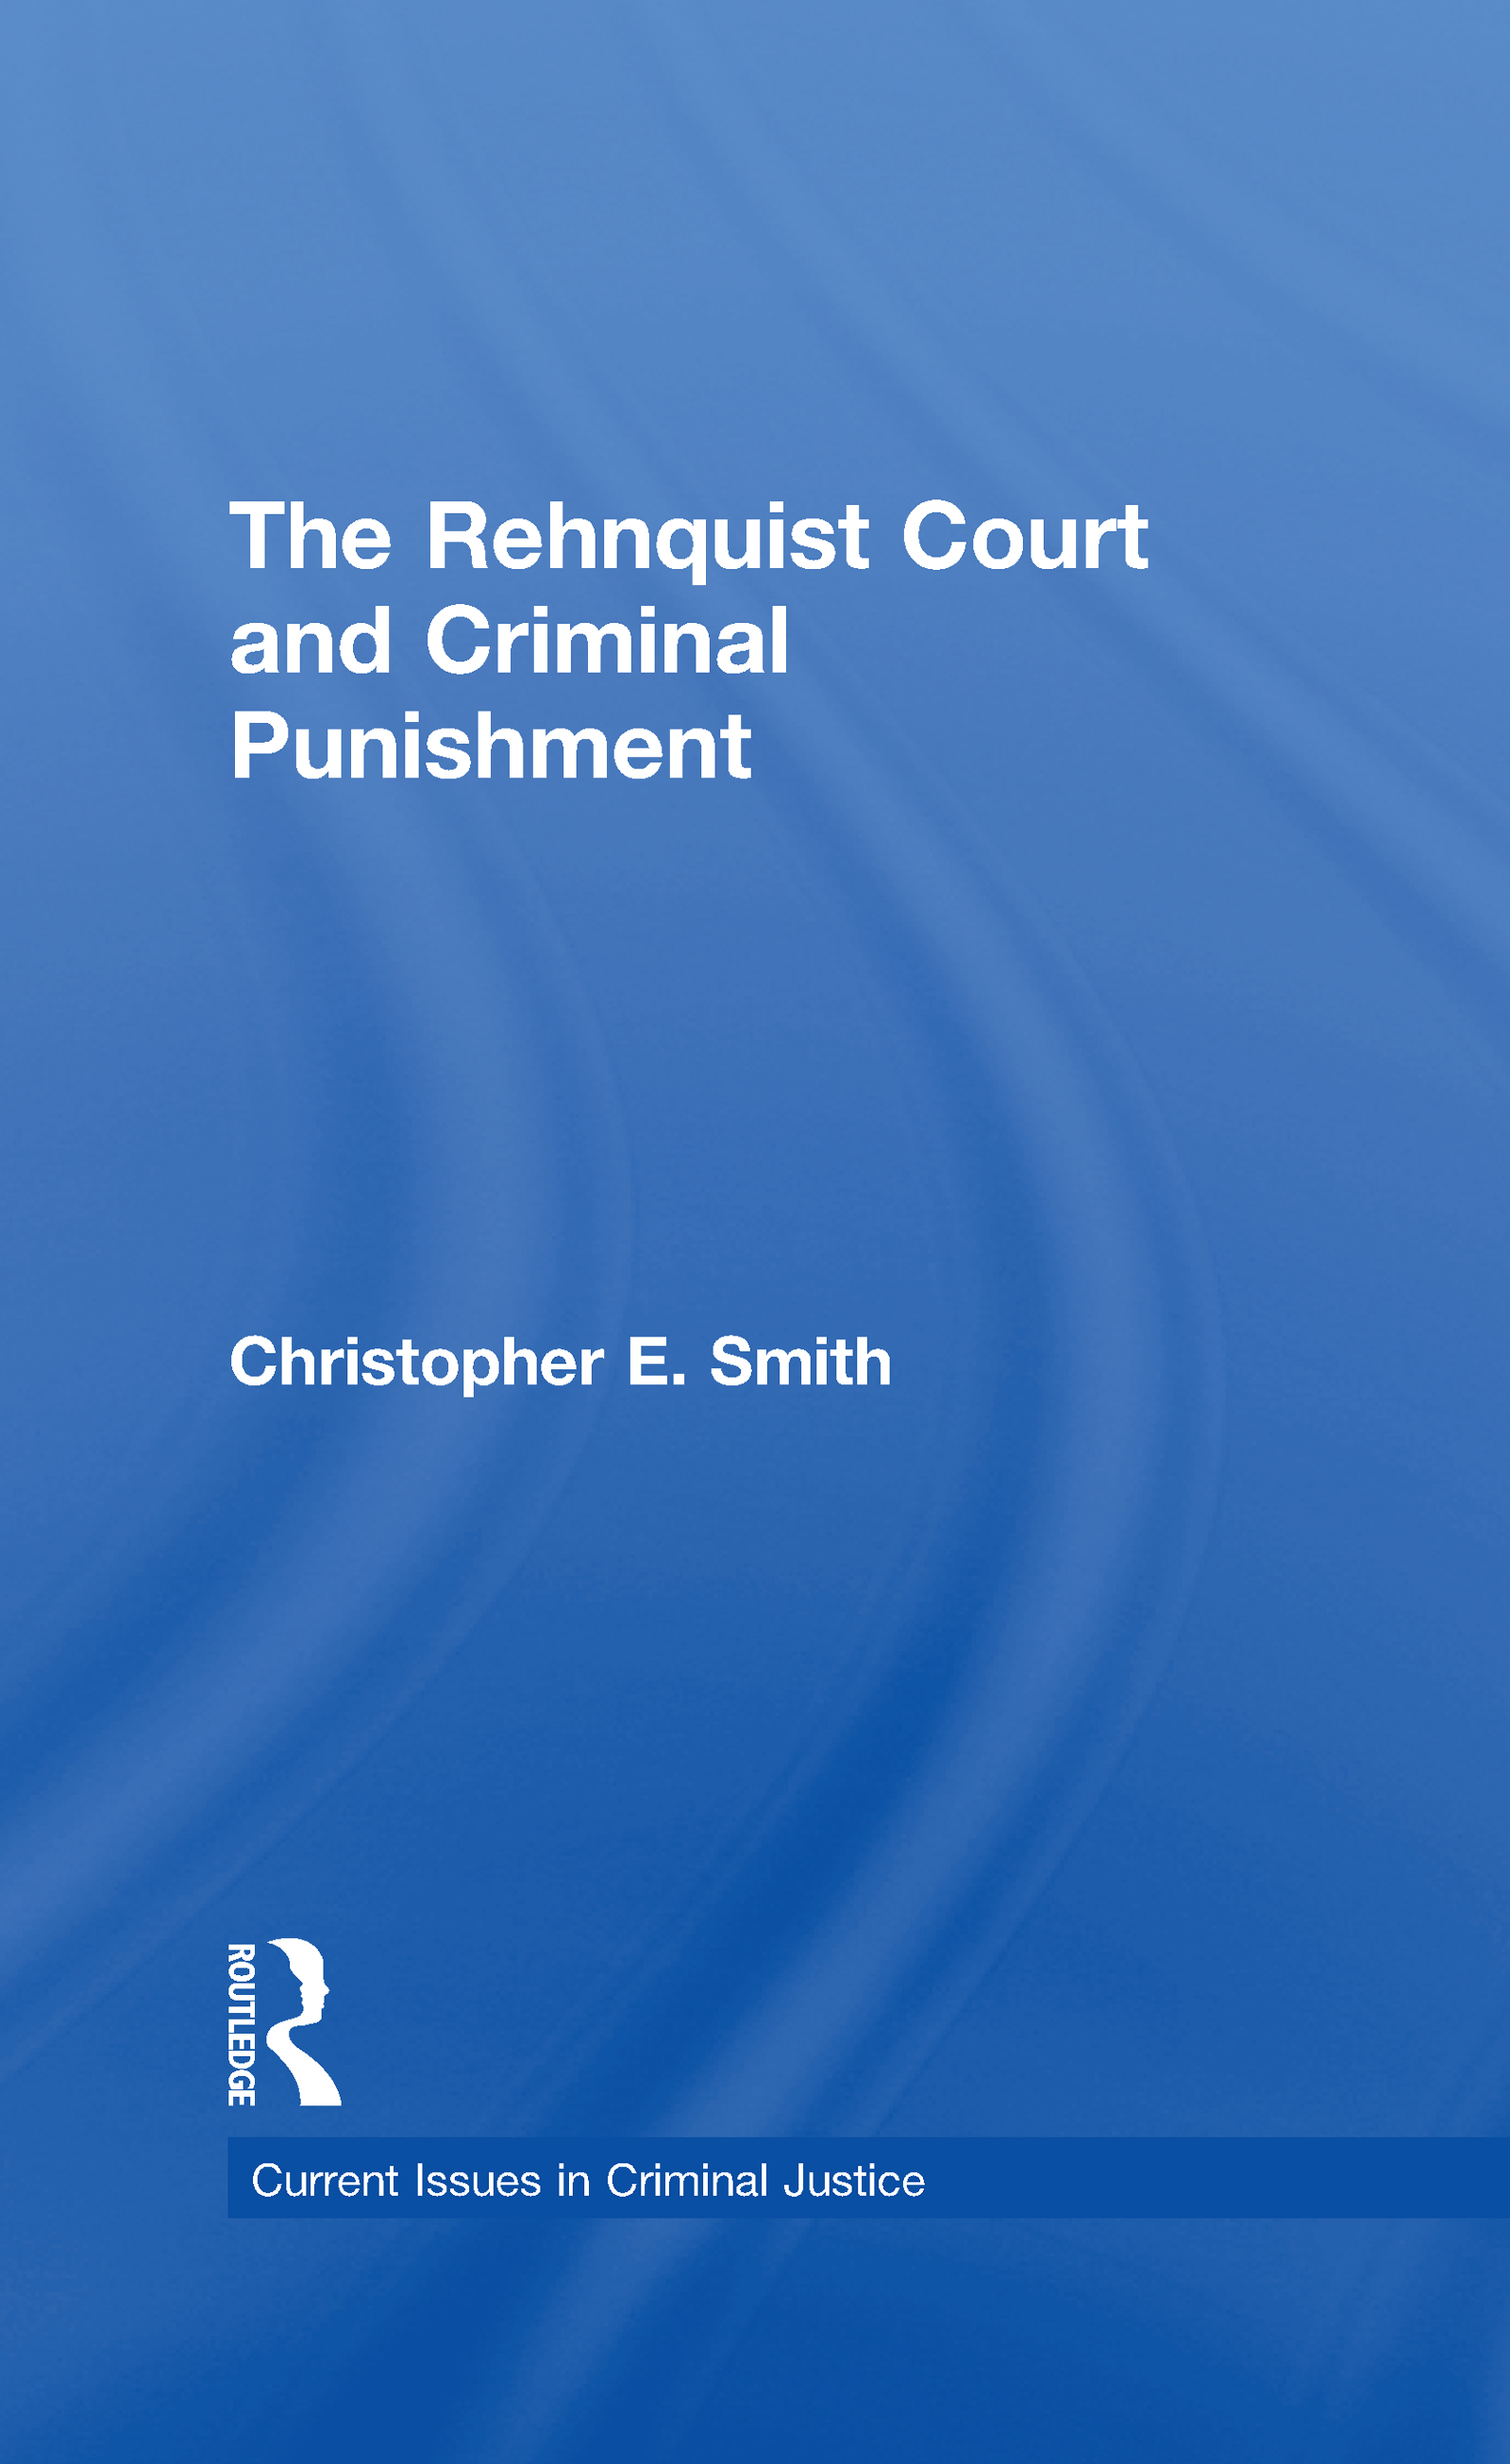 The Rehnquist Court and Criminal Punishment (e-Book) book cover